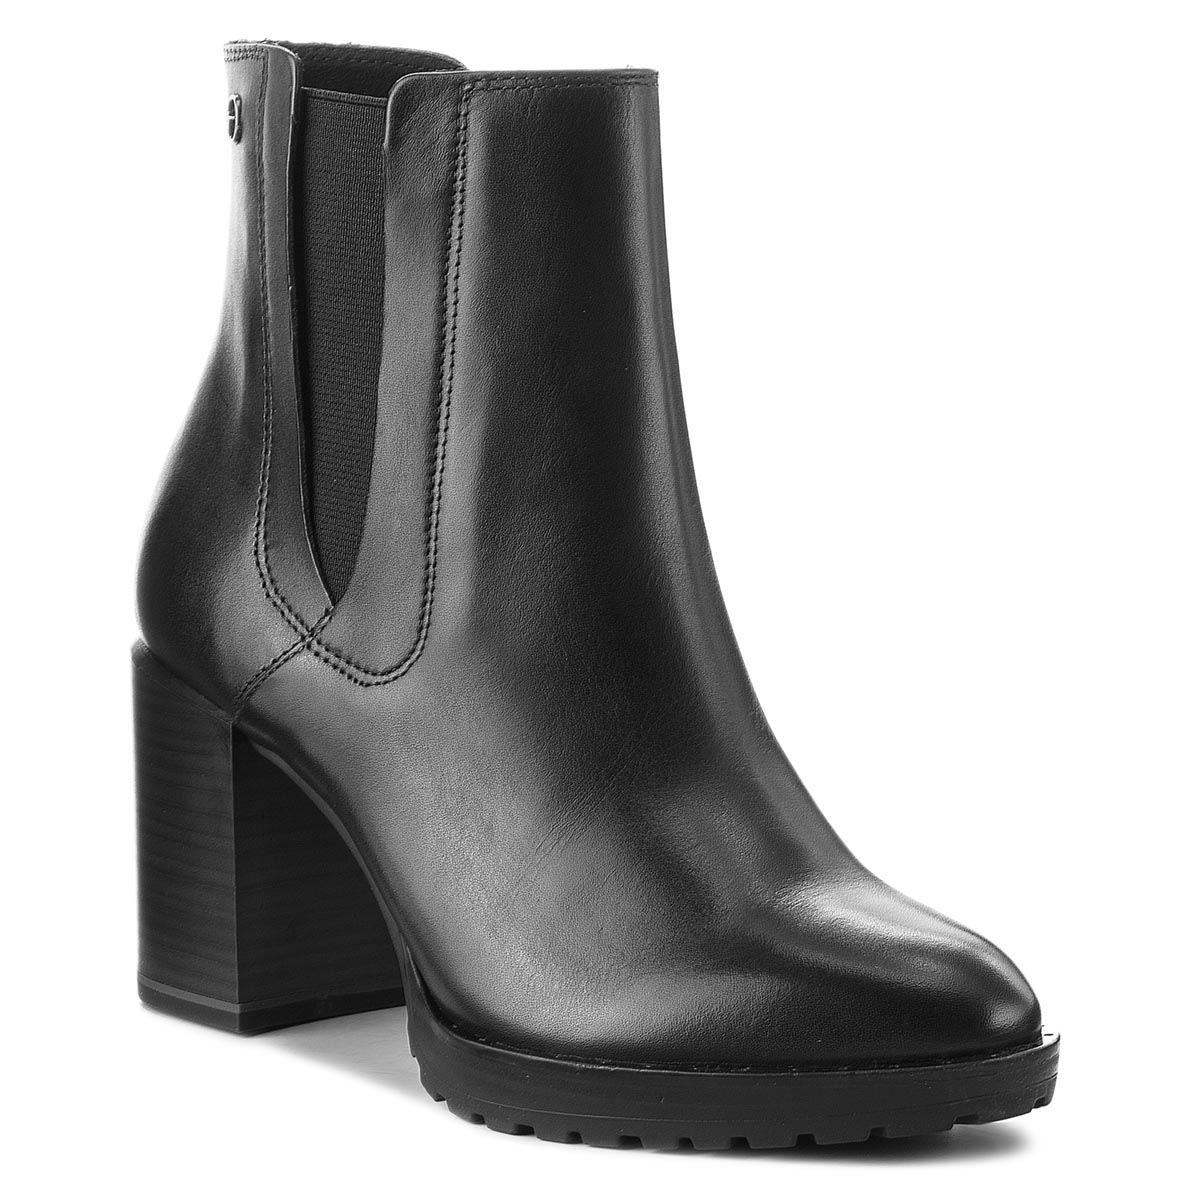 Botine TAMARIS - 1-25328-21 Black 001